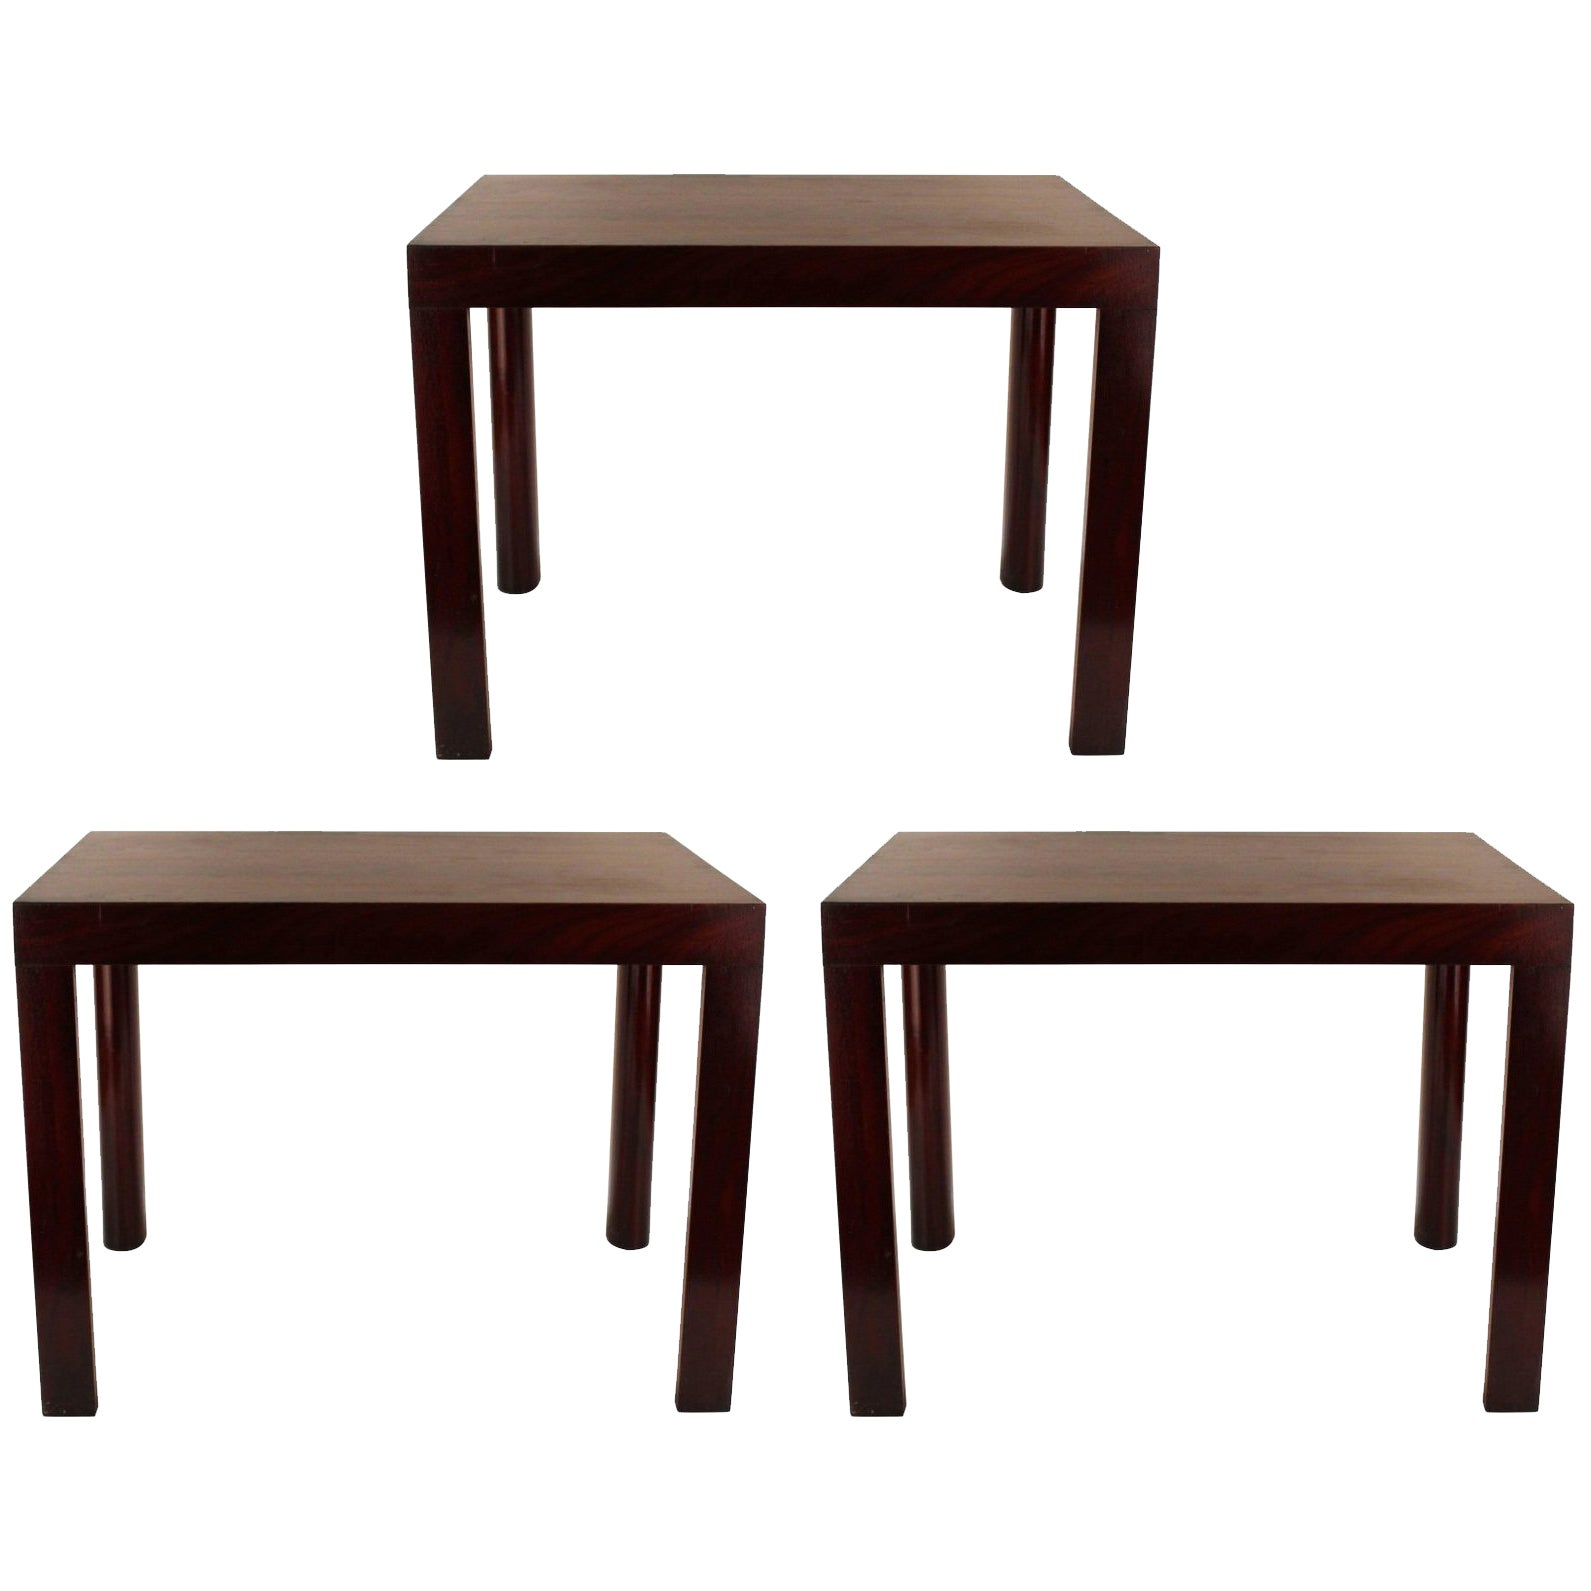 Set of Three Side Tables by Enfield